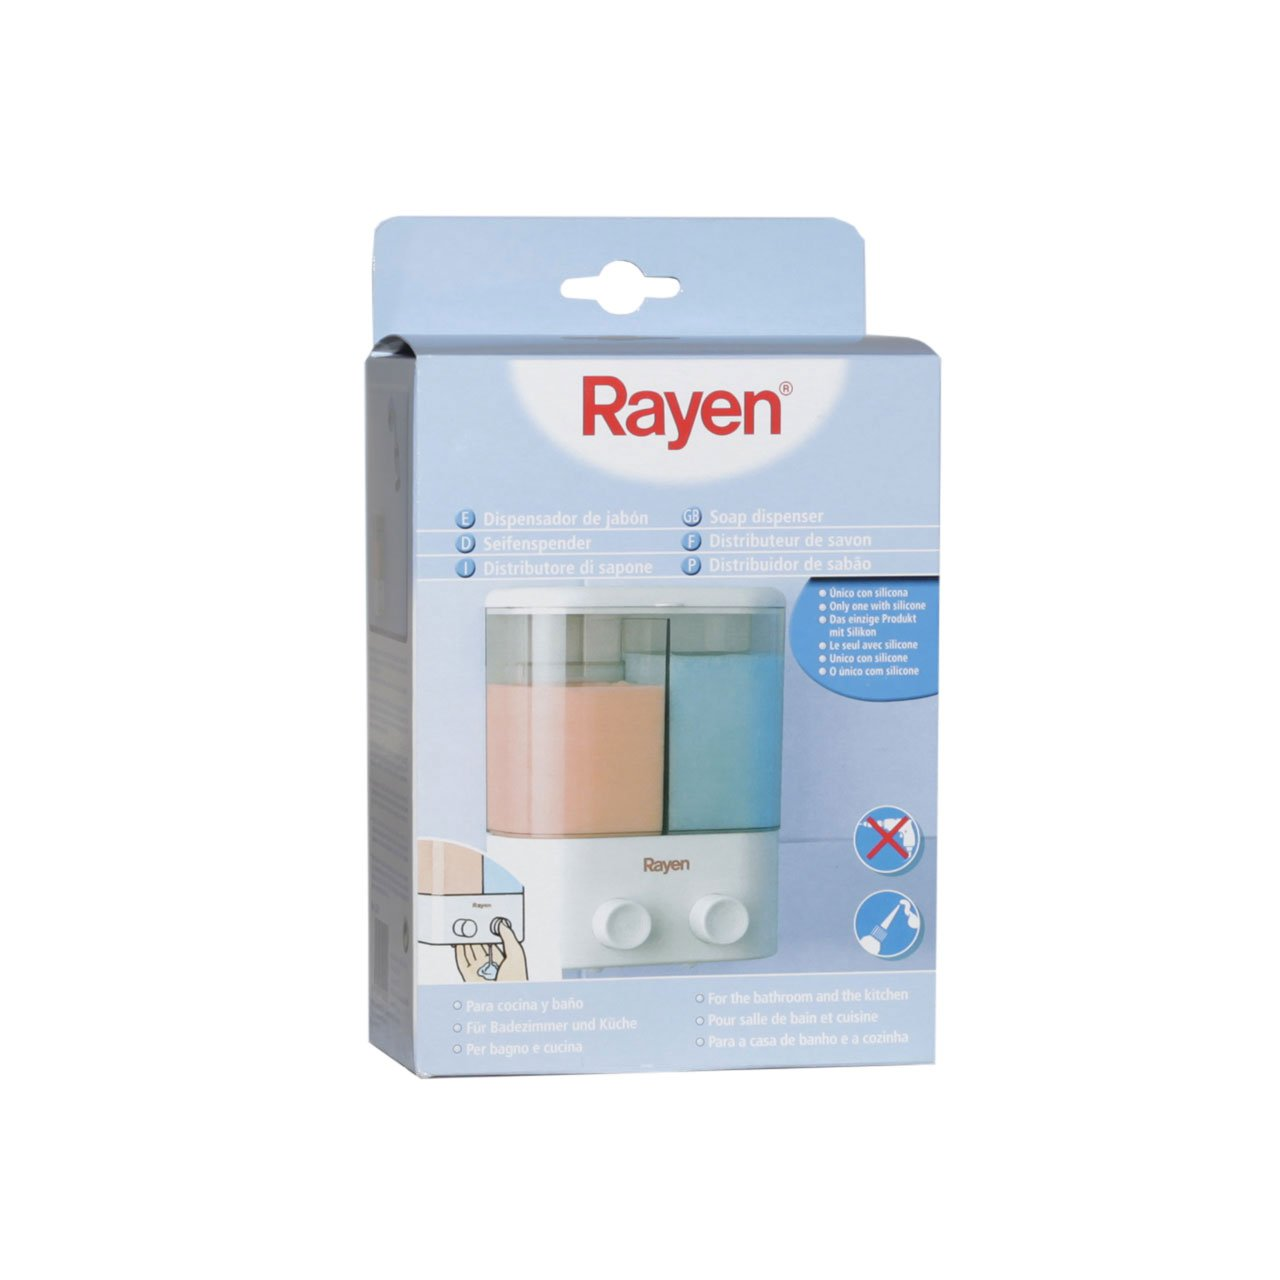 Rayen 2020 - Dispensador de jabón, 2 compartimentos individuales, color blanco: Amazon.es: Hogar